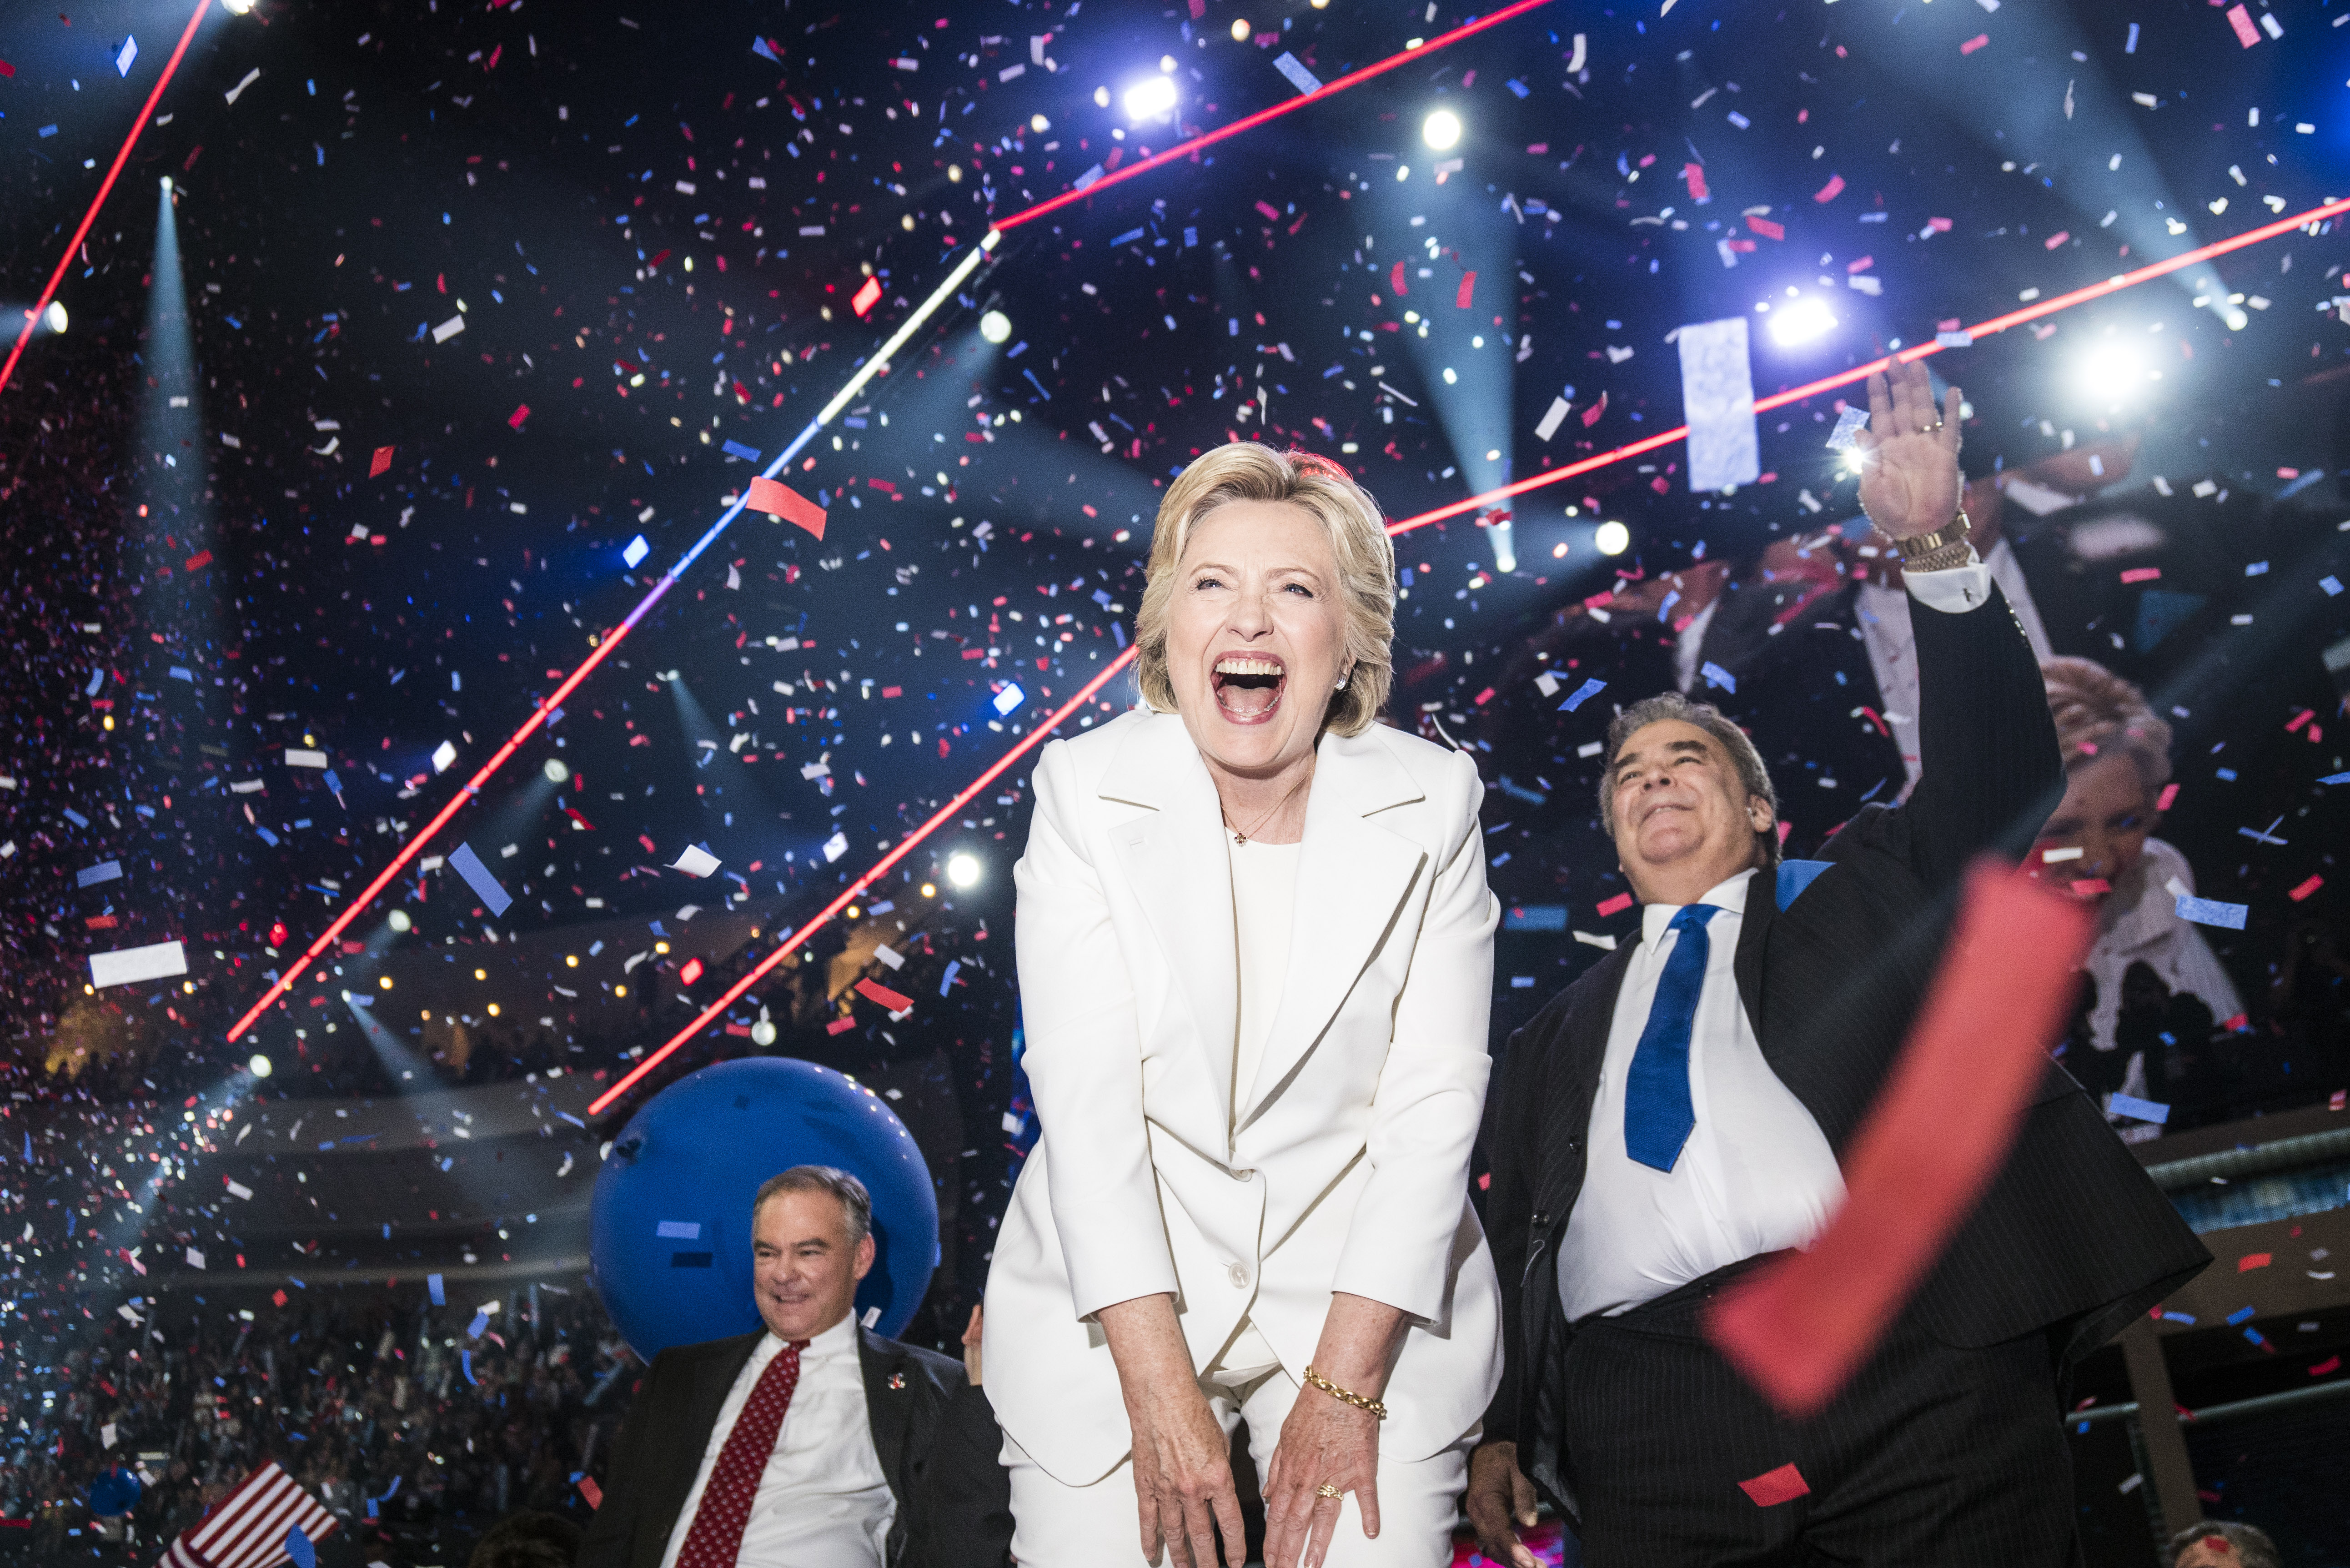 An ecstatic Hillary Clinton celebrates at the conclusion of the Democratic National Convention where she accepted the nomination in Philadelphia, on July 28, 2016.